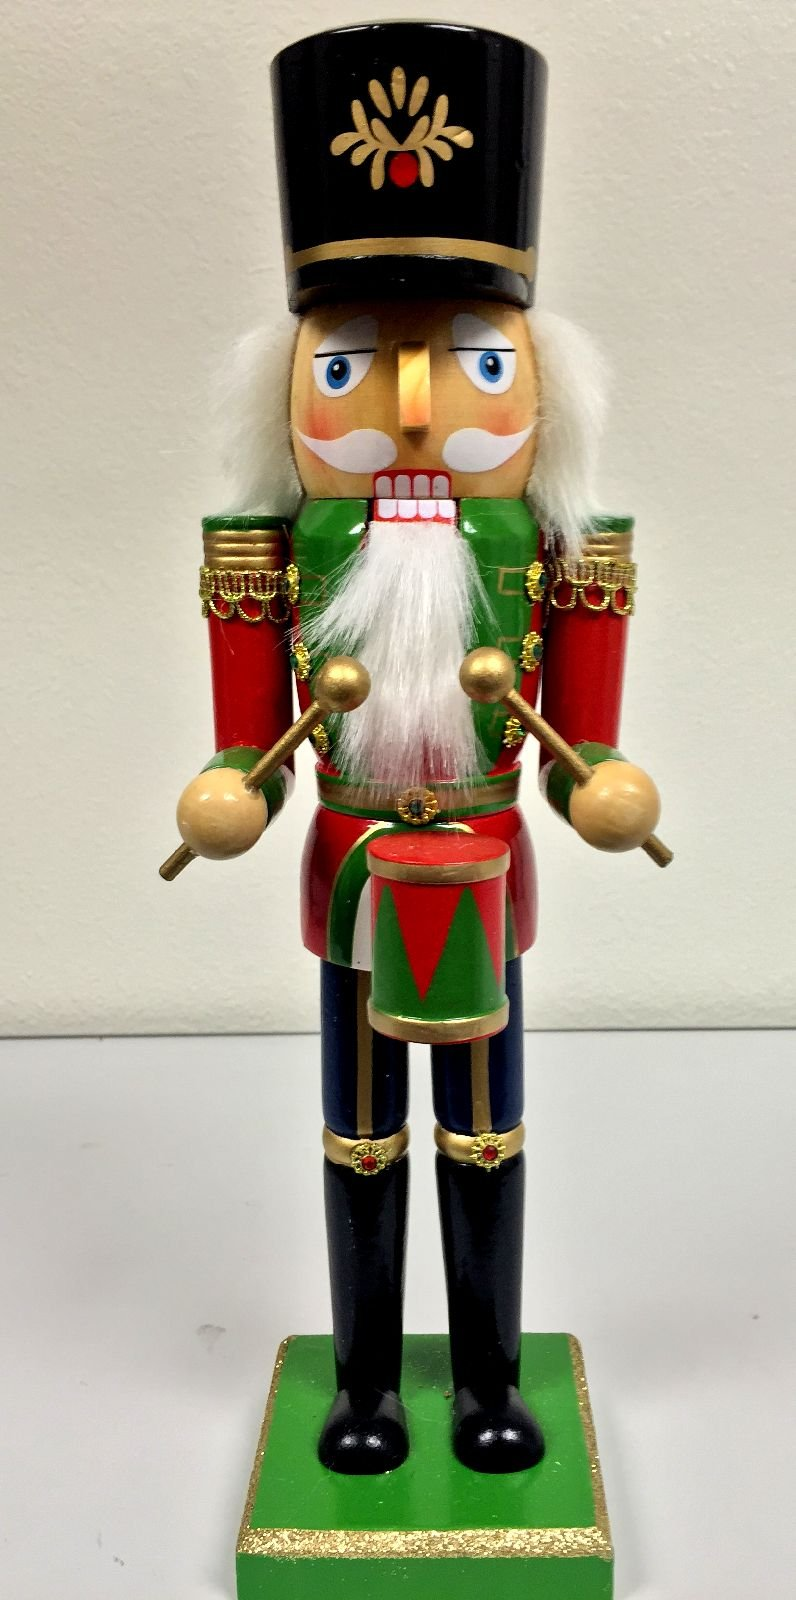 Red and Green Drummer Wooden Christmas Nutcracker 14 Inch Holiday Decoration New